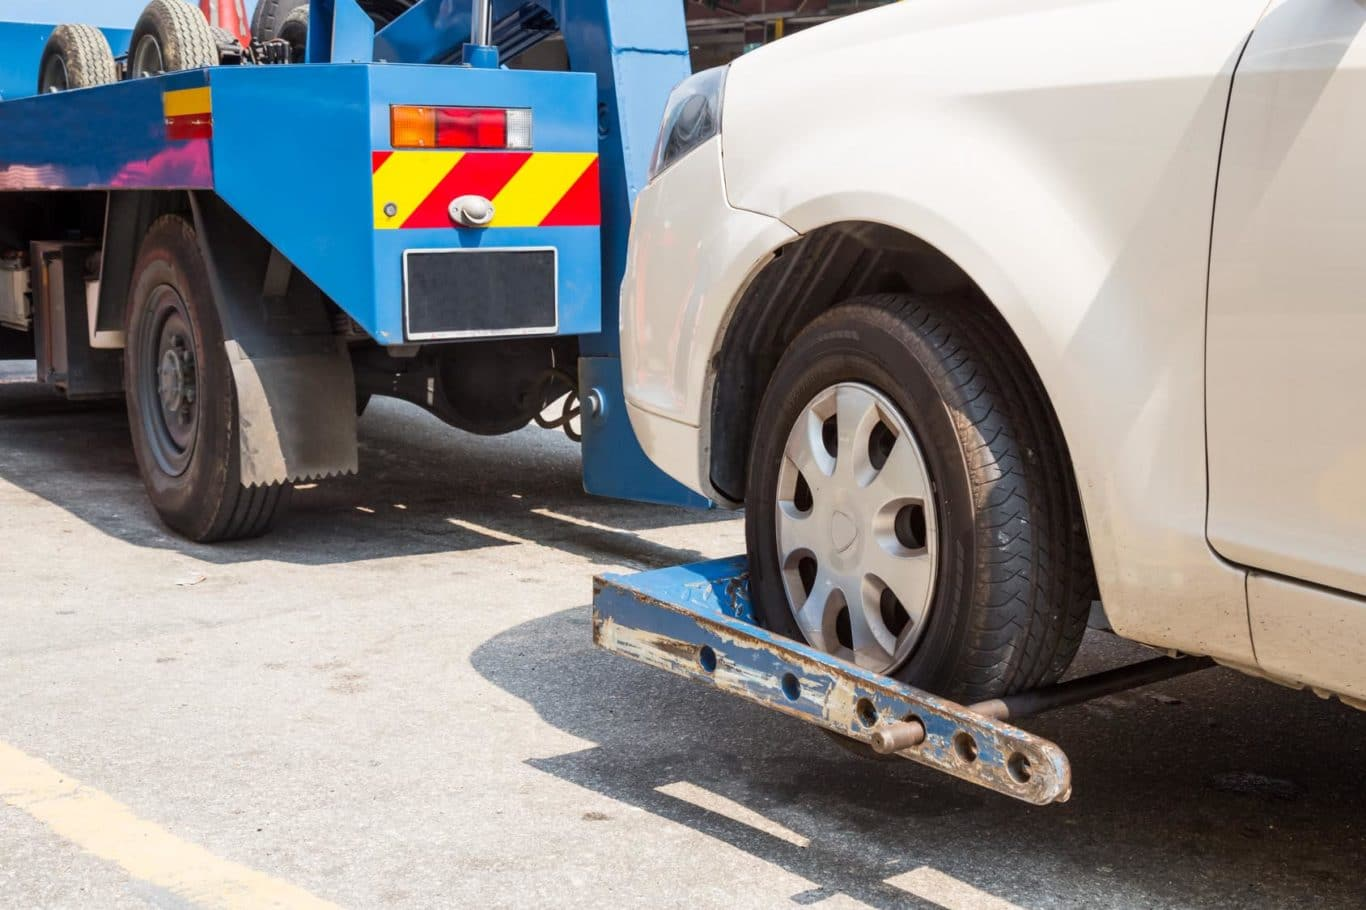 Allenwood expert Car Recovery services